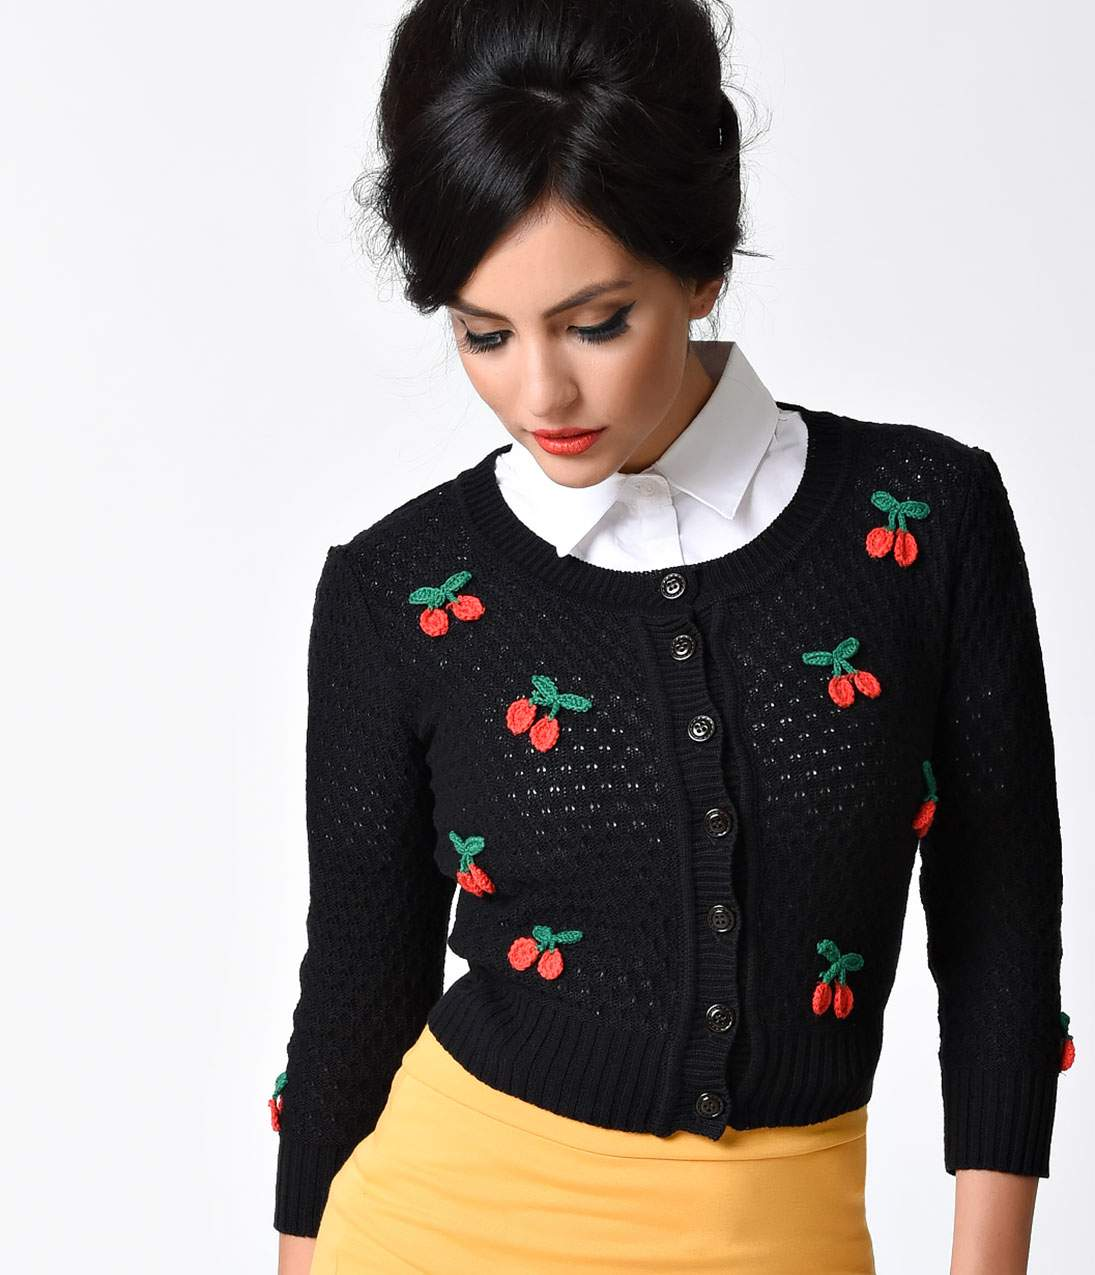 Three Style Knit Cherry amp; Cardigan Quarter Crop Red Sleeve Vintage Black n6Ax1xp